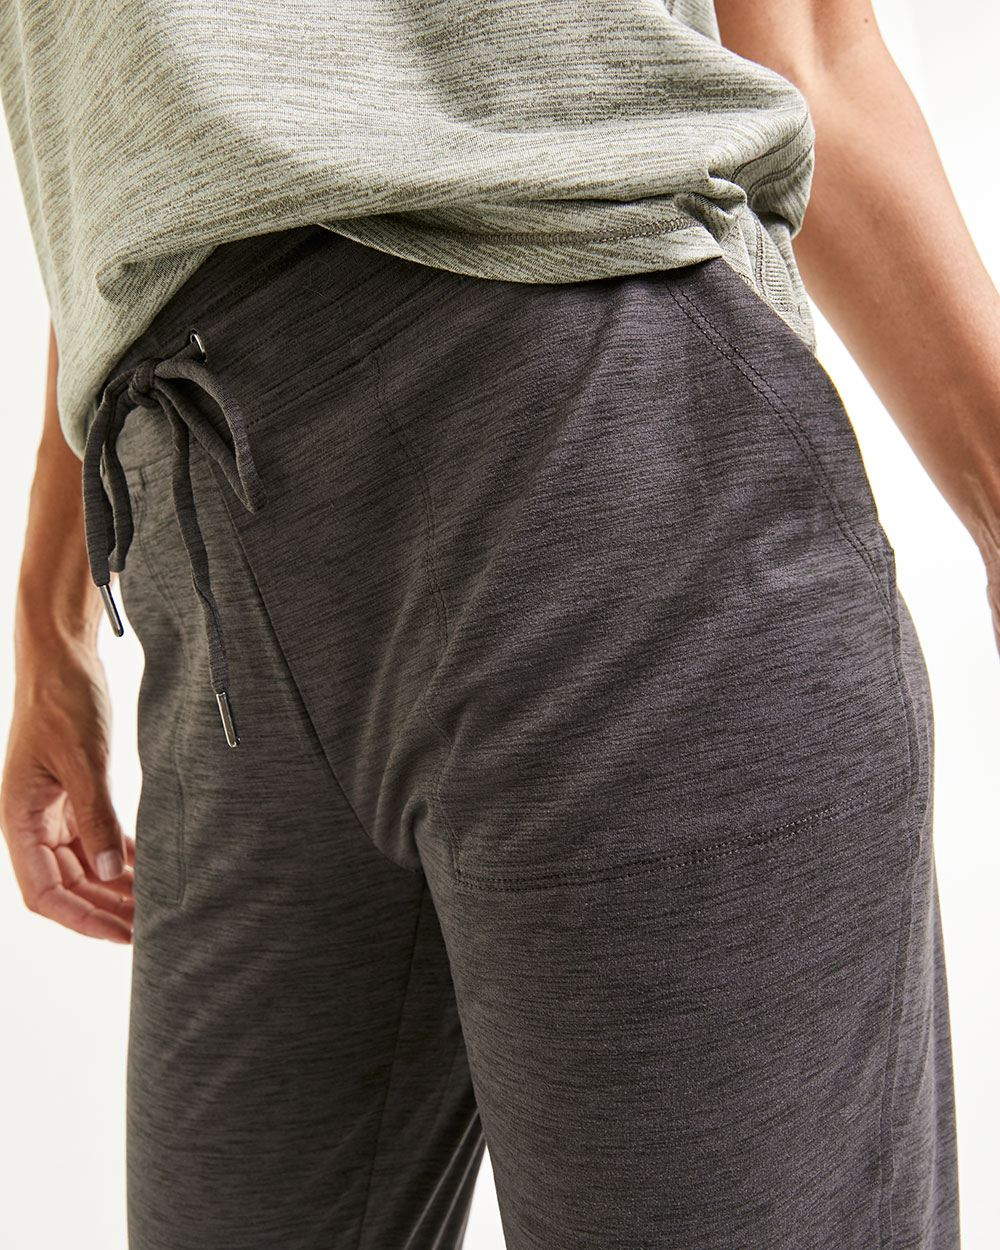 Jogger Pants with Drawstring Ultra Soft Hyba